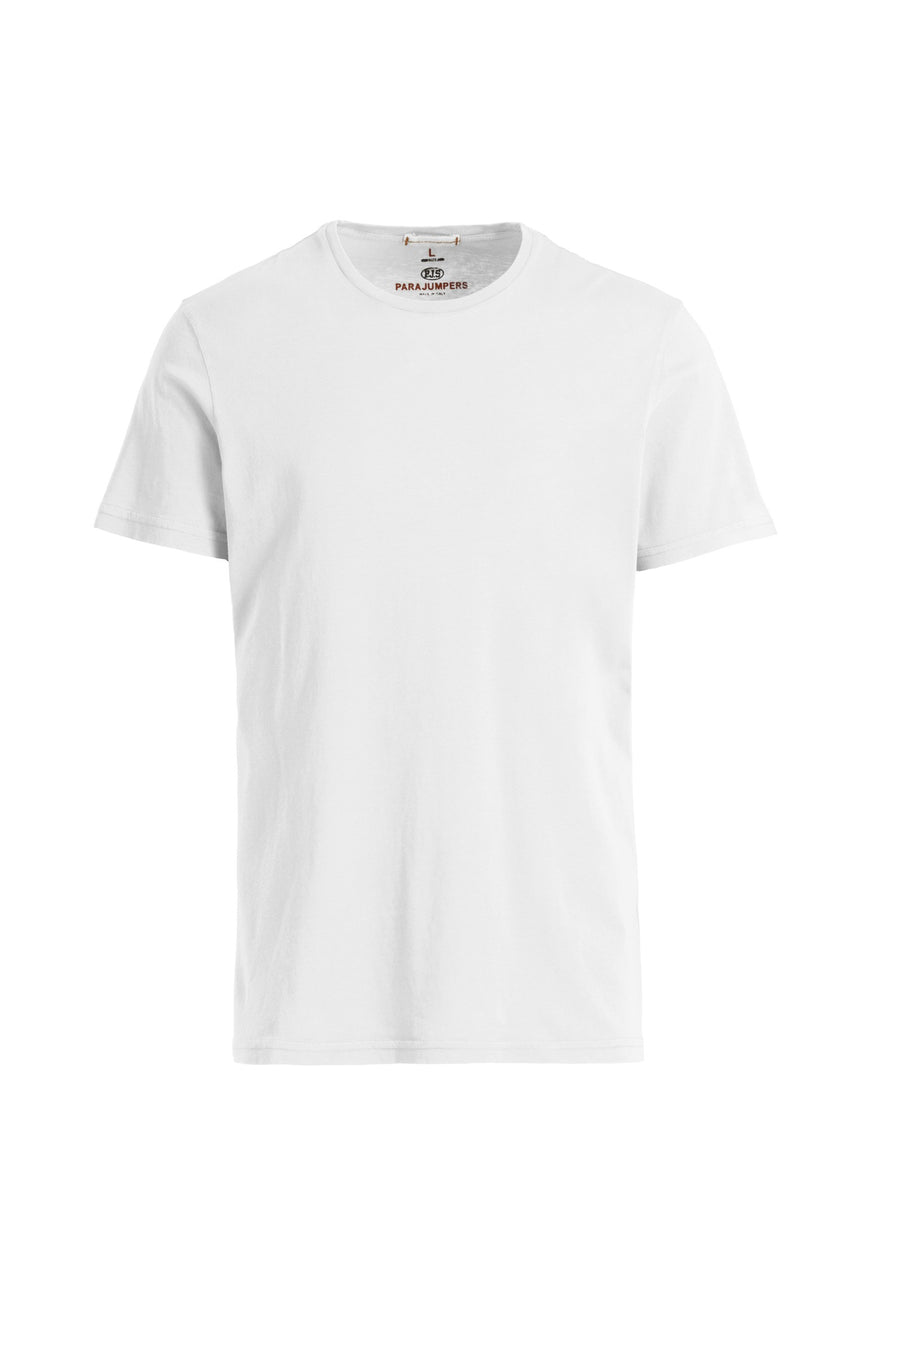 Parajumpers M-Cedric Men's Tee SS18